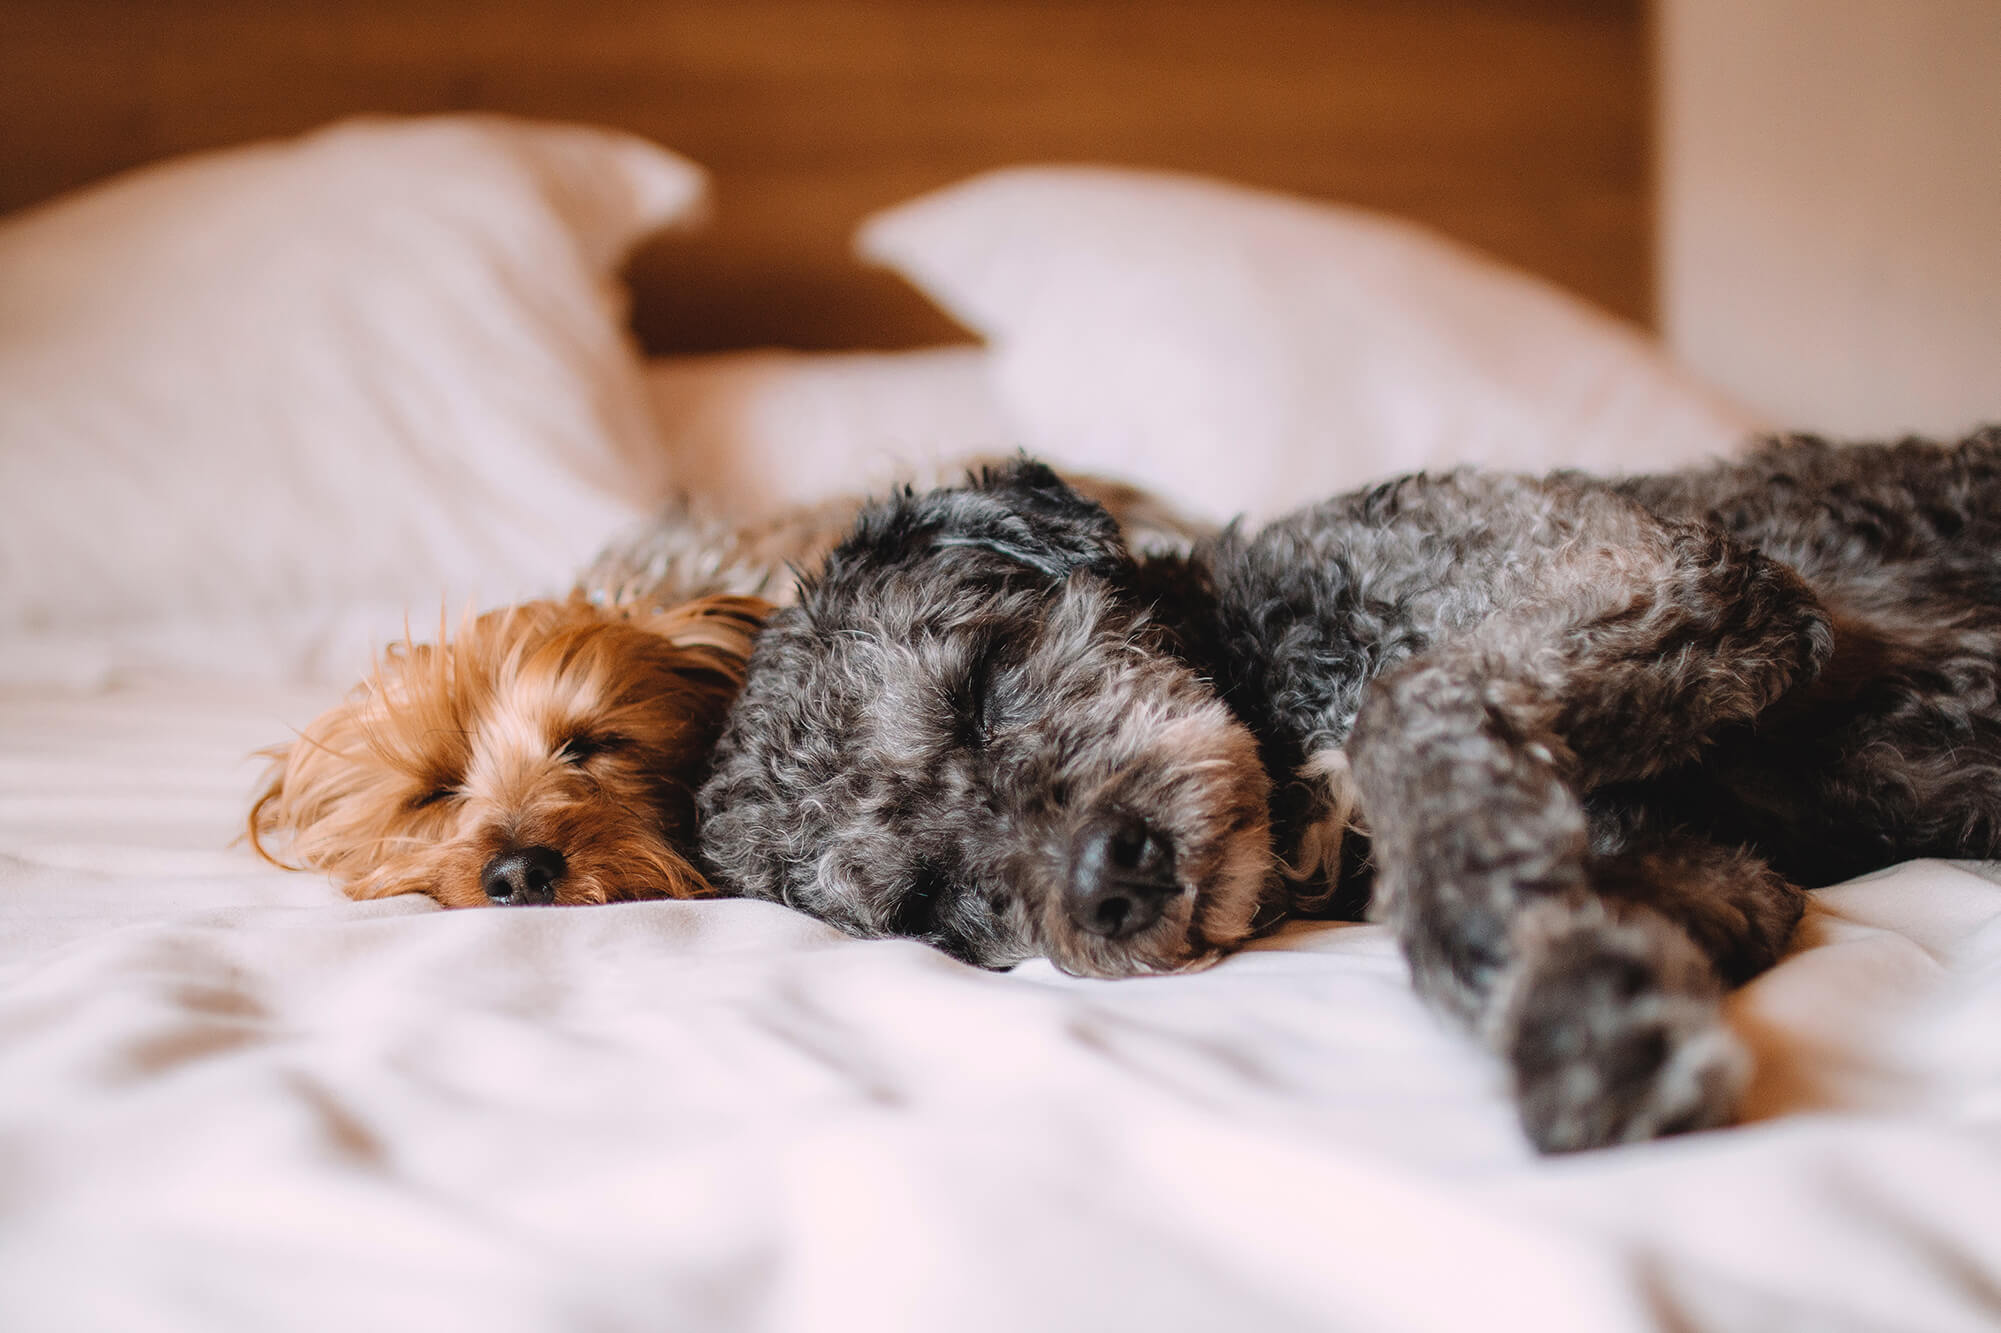 Two puppies nap on a bed